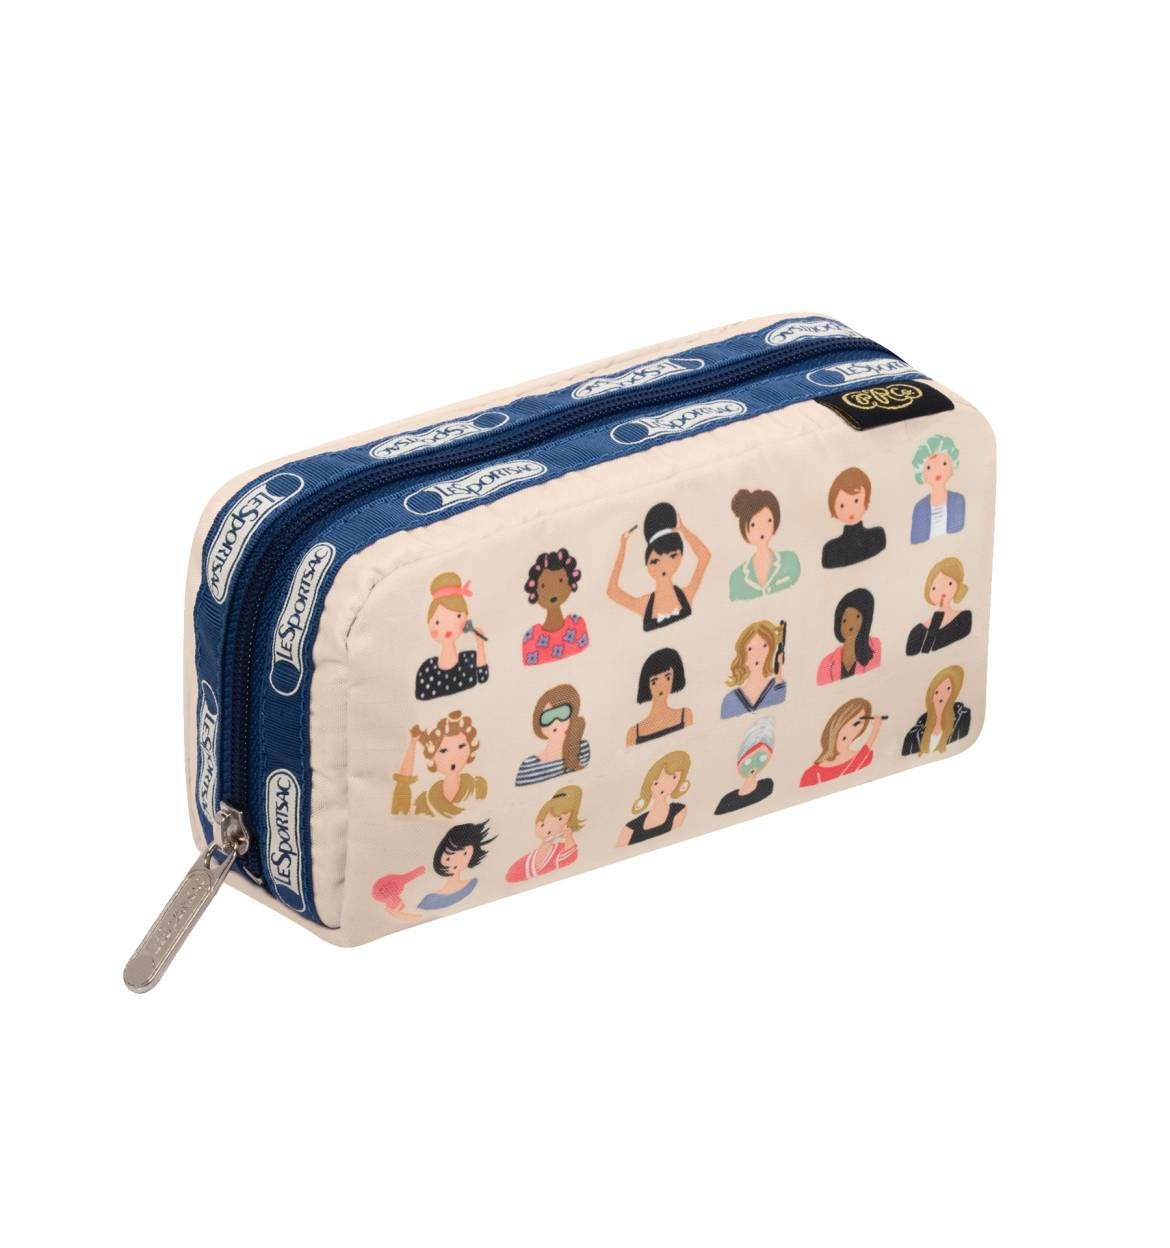 O Gorgeous Rectangular Cosmetic Bag By Lesportsac At Paper Co 25